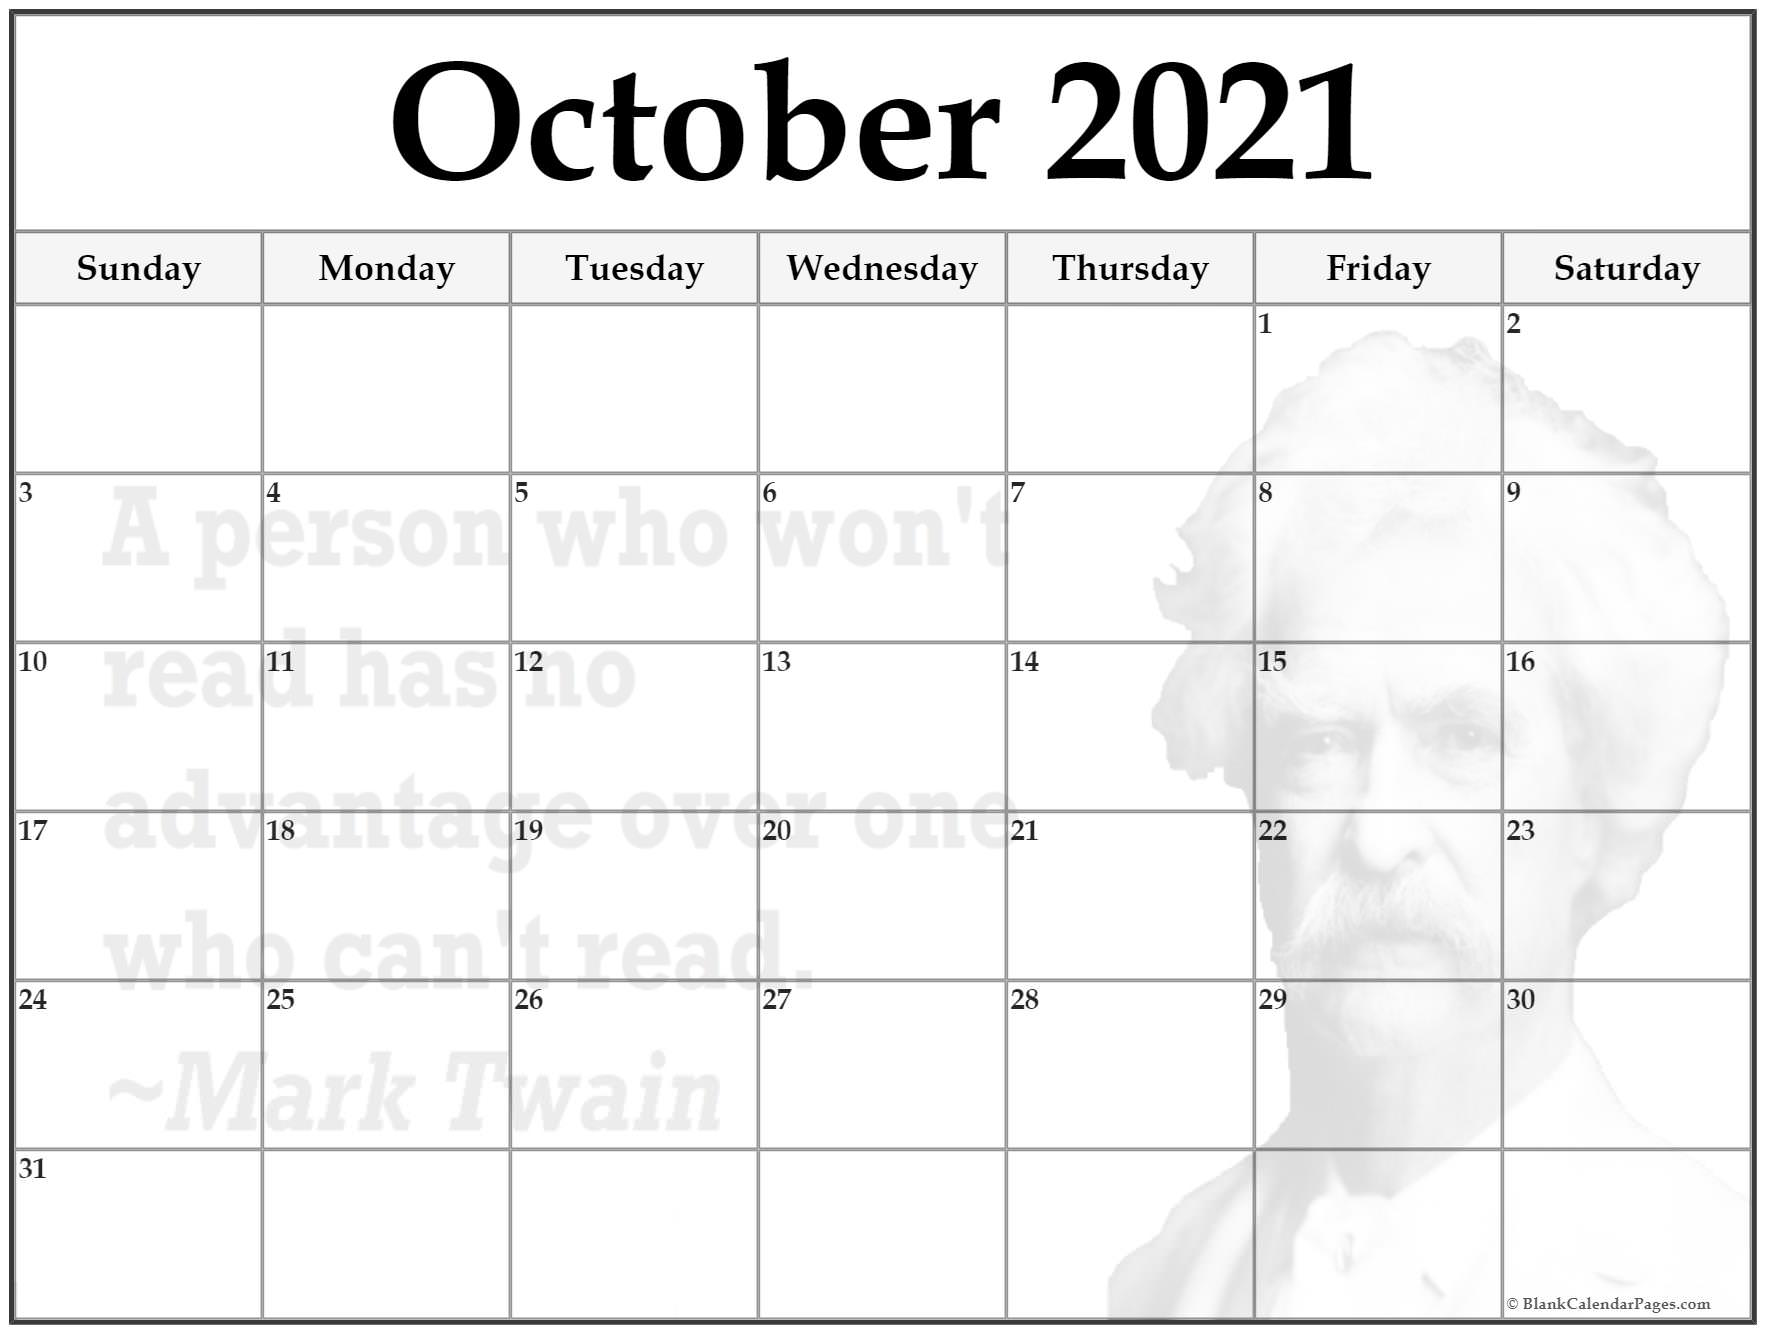 October 2021 printable quote calendar template. A person who won't read has no advantage over a person who can't read. ~Mark Twain